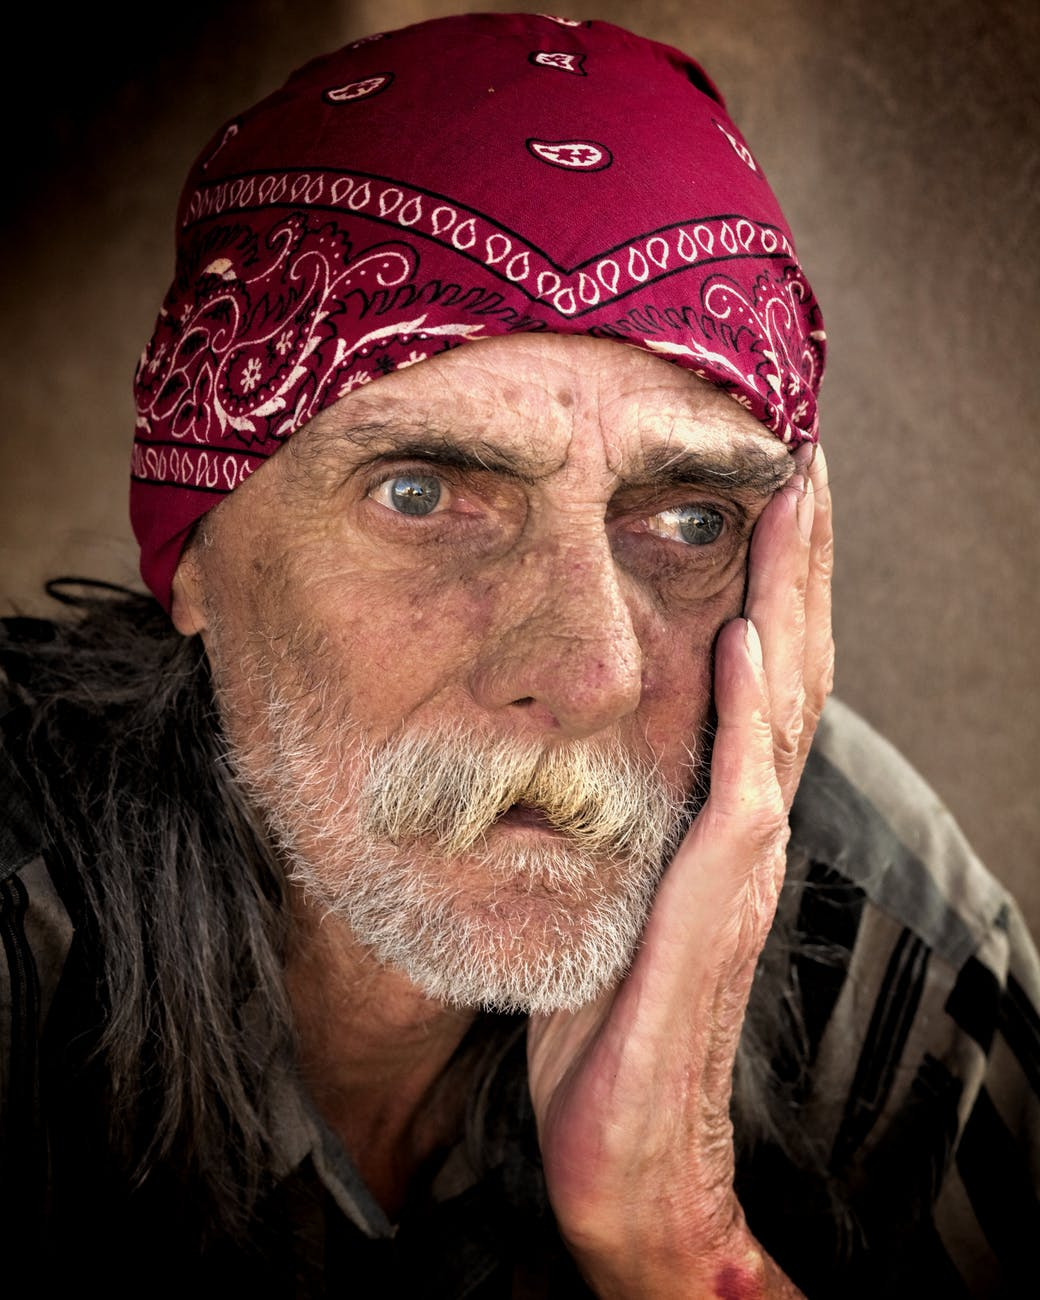 A destitute man in wonder of how he will survive the next week with the little food, money, and healthcare protection that he has